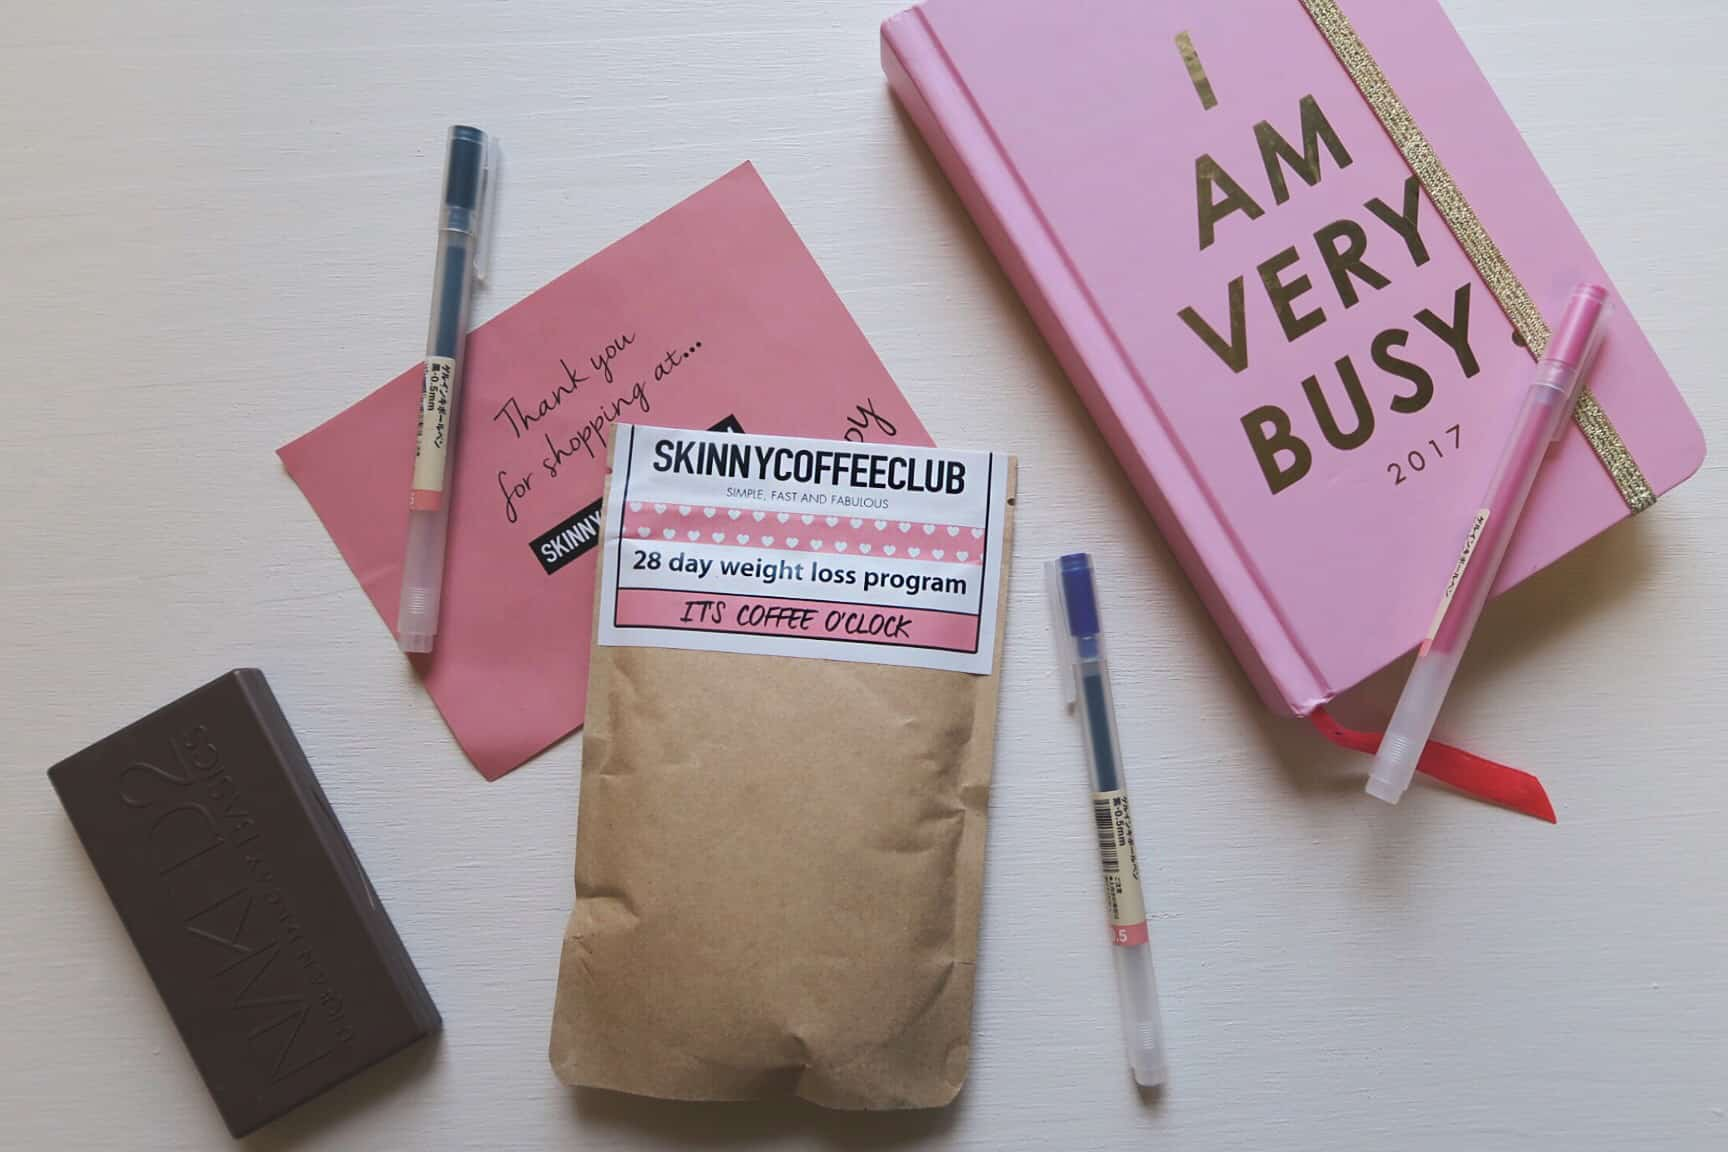 Skinny Coffee Club weight loss and bloating review